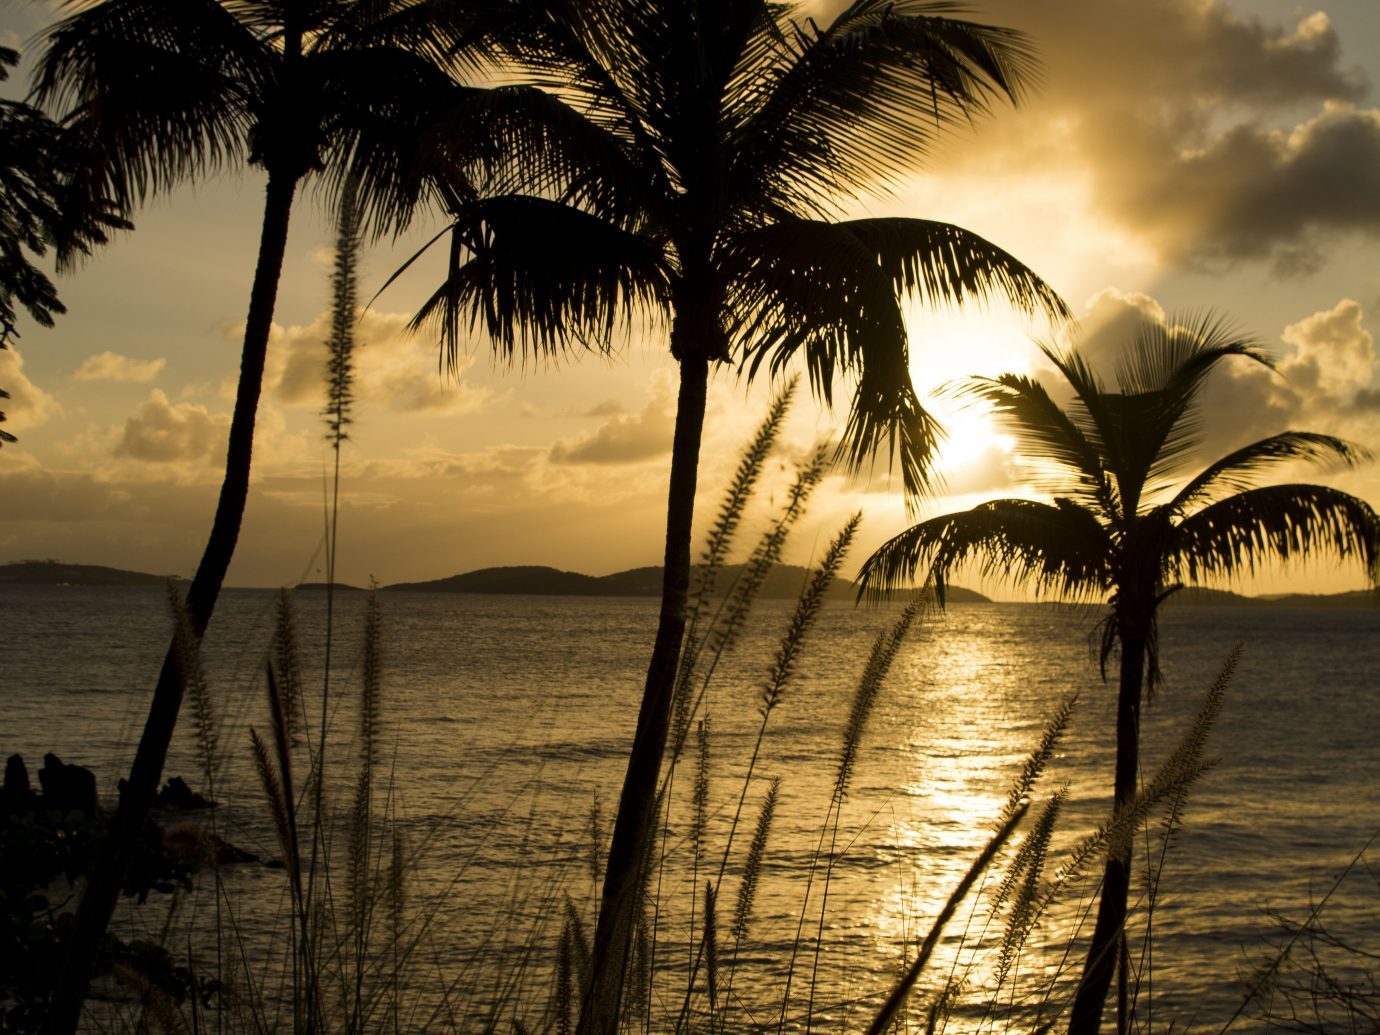 palm trees and ocean at dusk